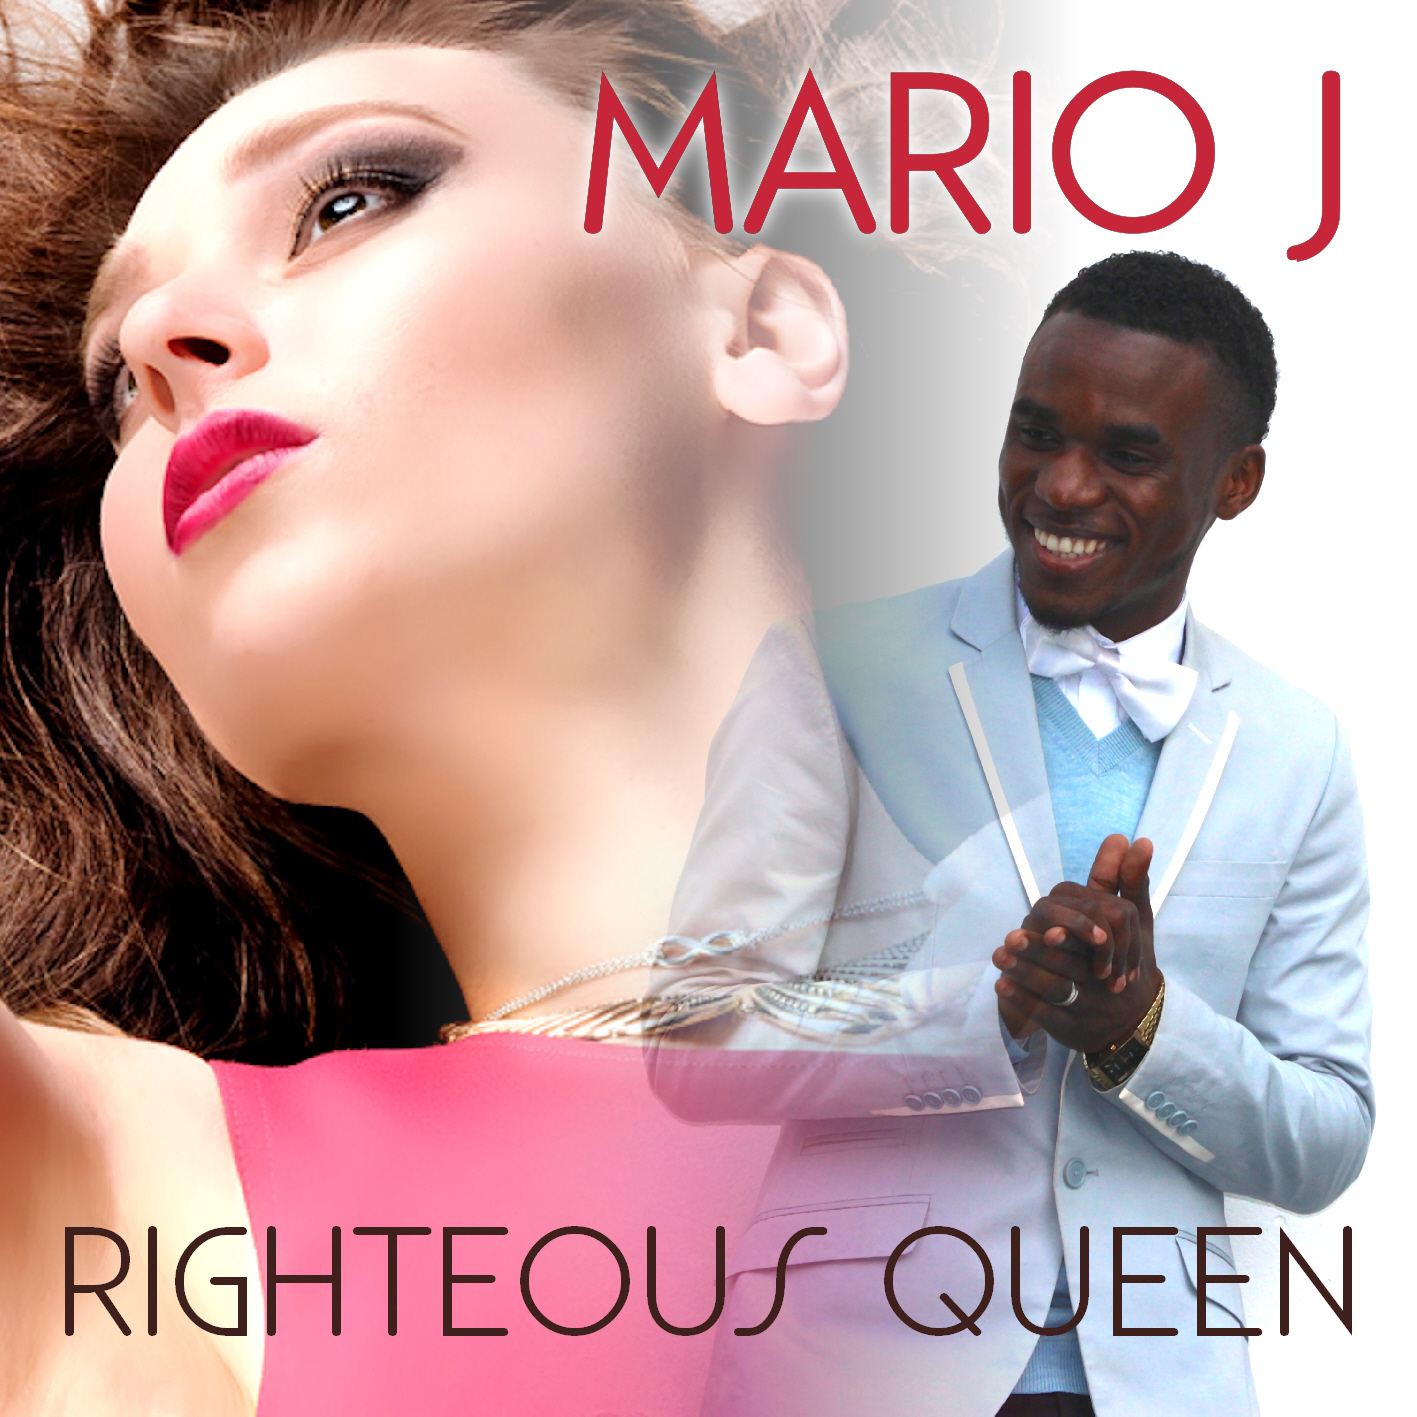 Mario J - Righteous queen